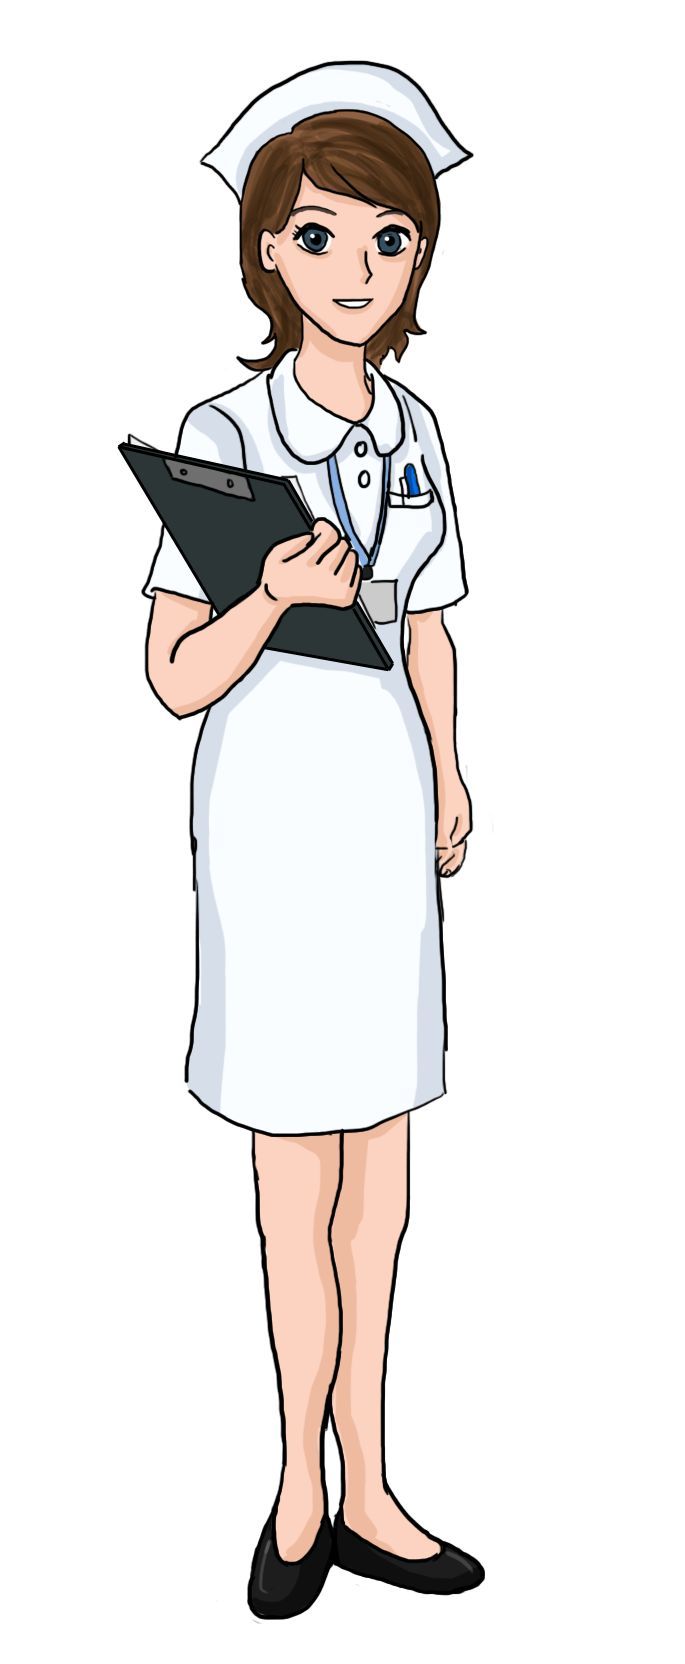 Nurse clipart Black nurse Nurse Free school